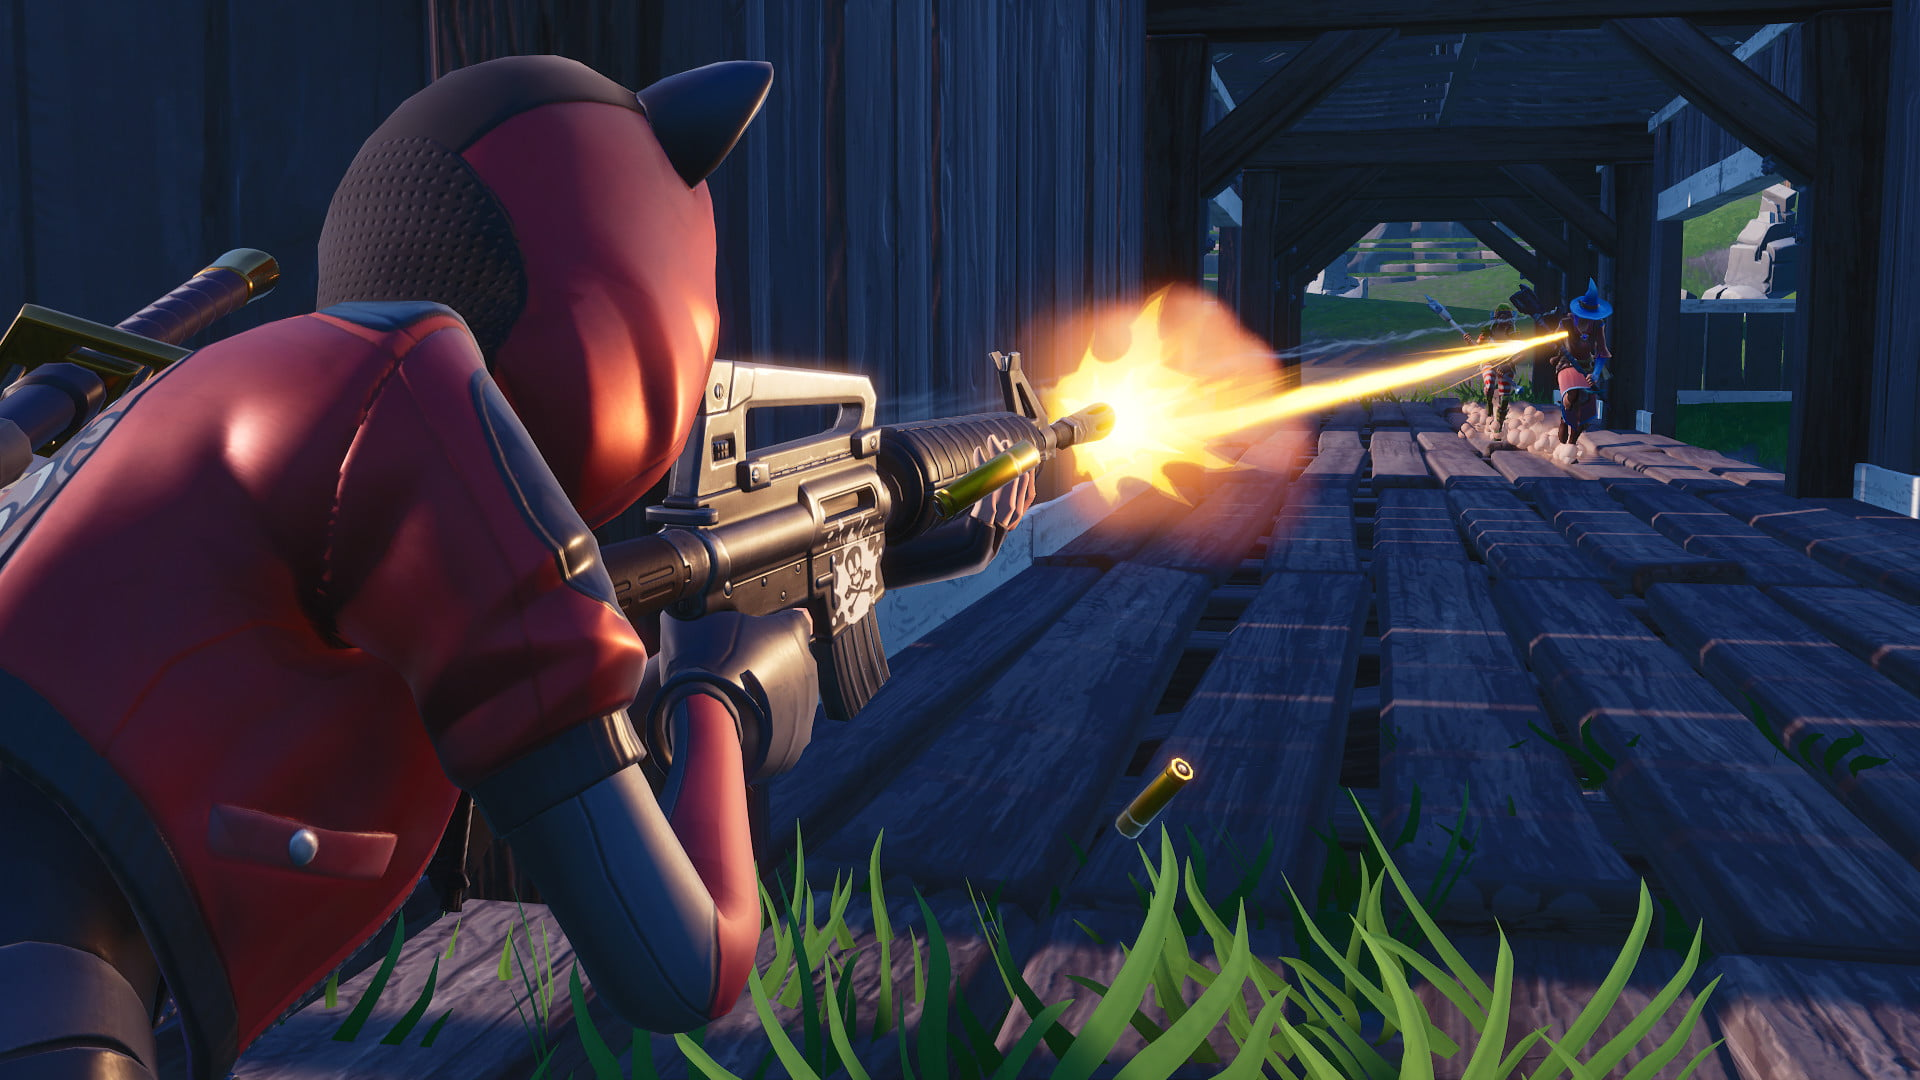 Fortnite Week 10 Challenges: Score 5 or More at the Shooting